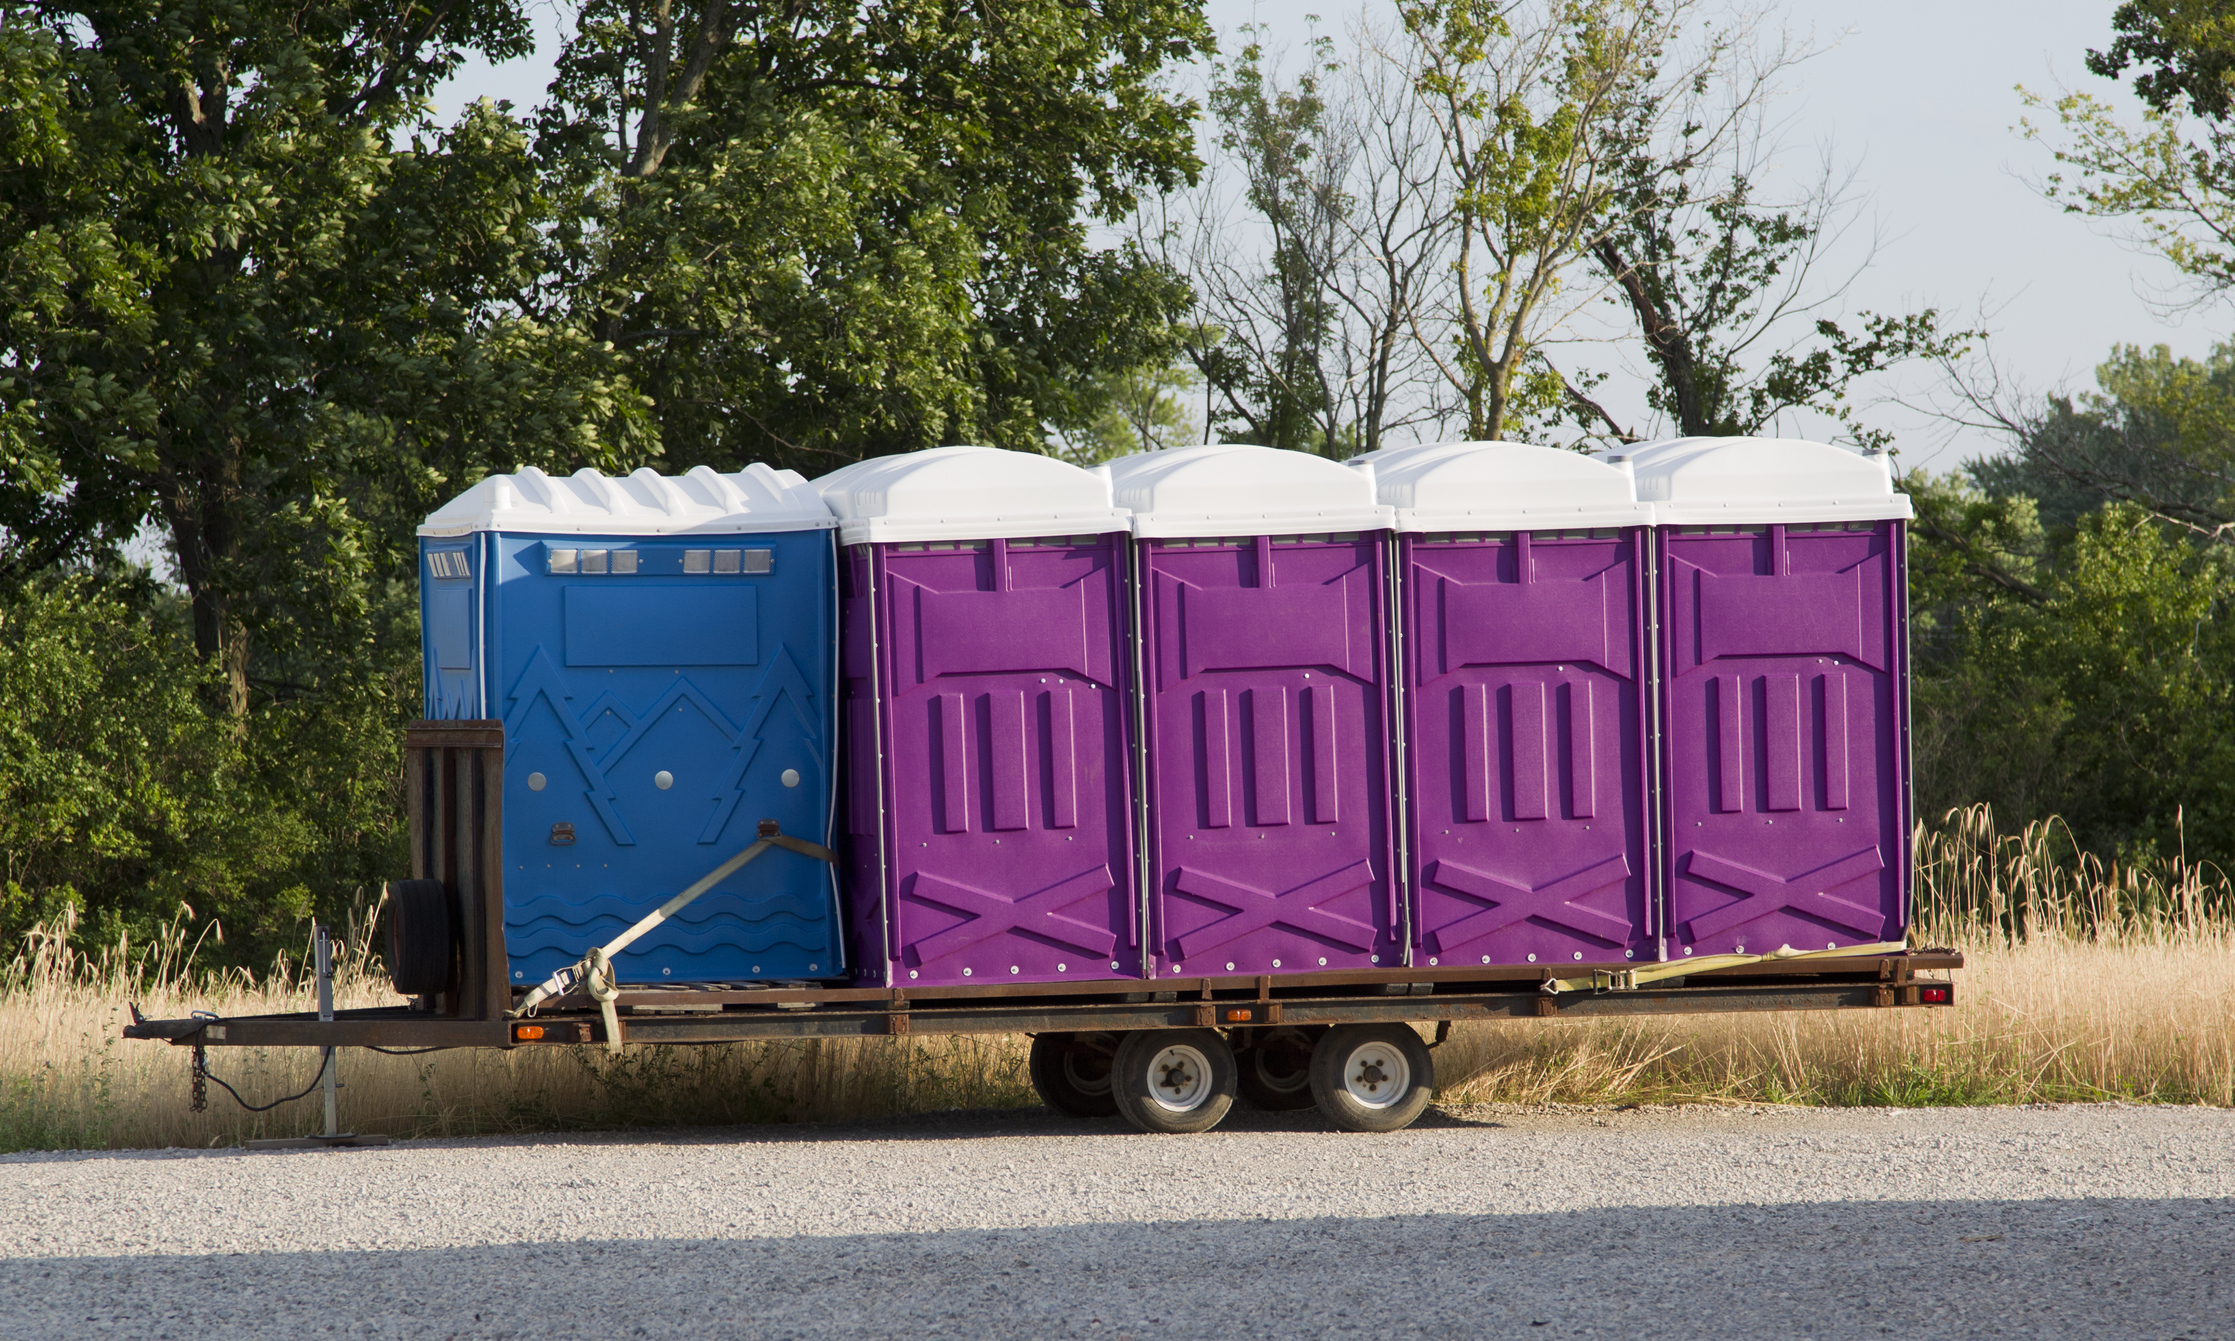 A set of blue and purple porta potty toilets on a trailer ready to be shipped to an event.